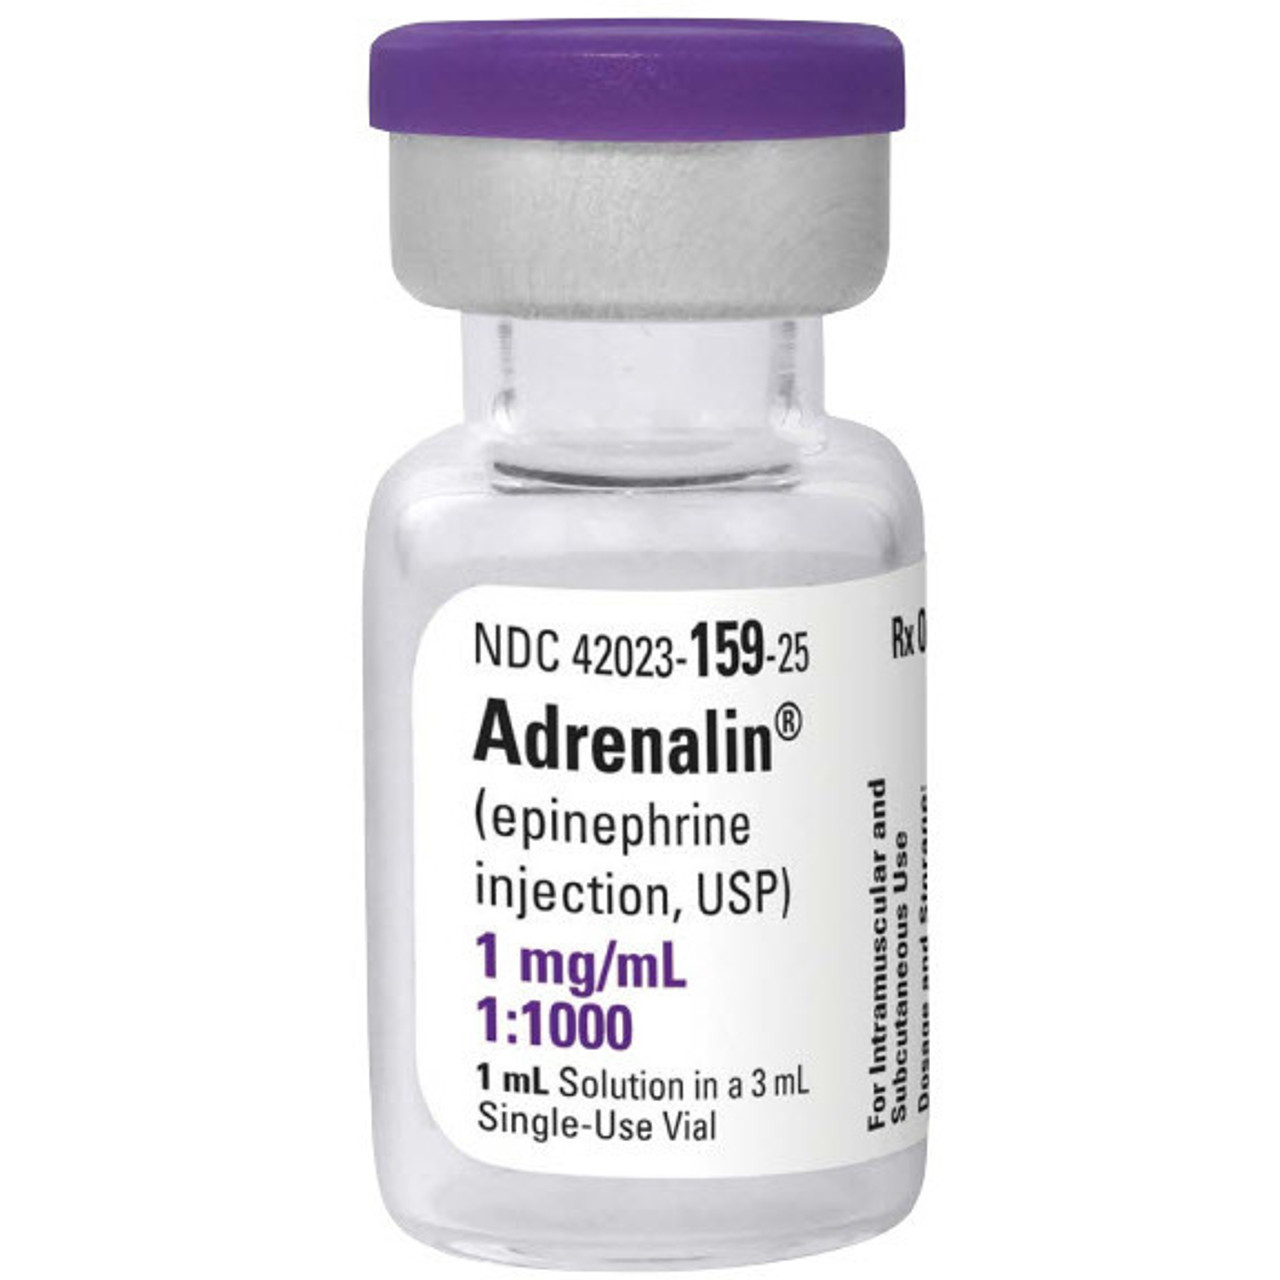 Epinephrine 1mg/ml Vial 1:1000 for Anaphylaxis - Each ...